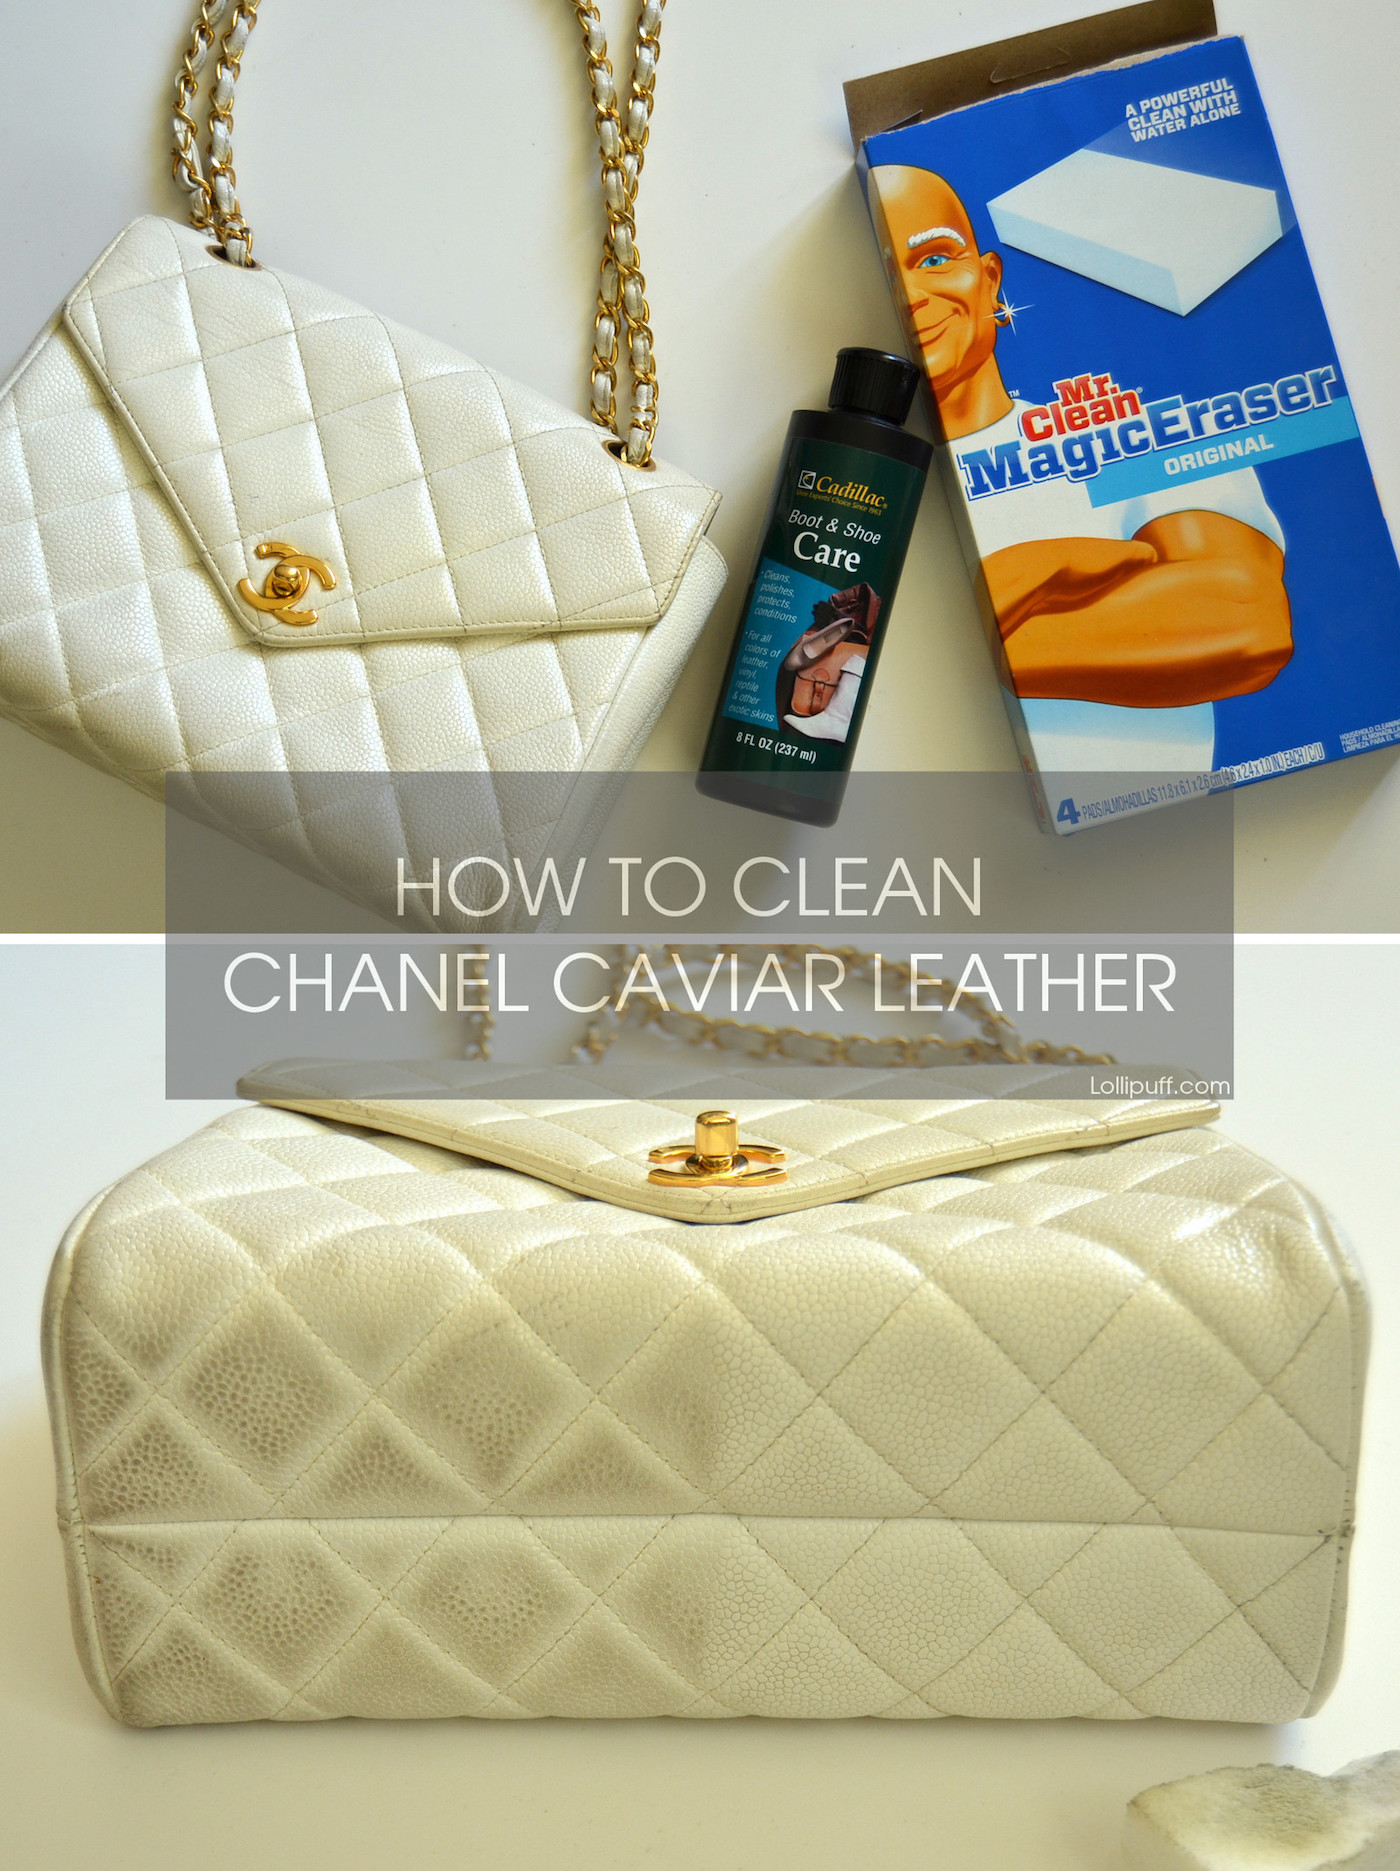 How To Clean A Light Colored Chanel Cavair Leather Bag